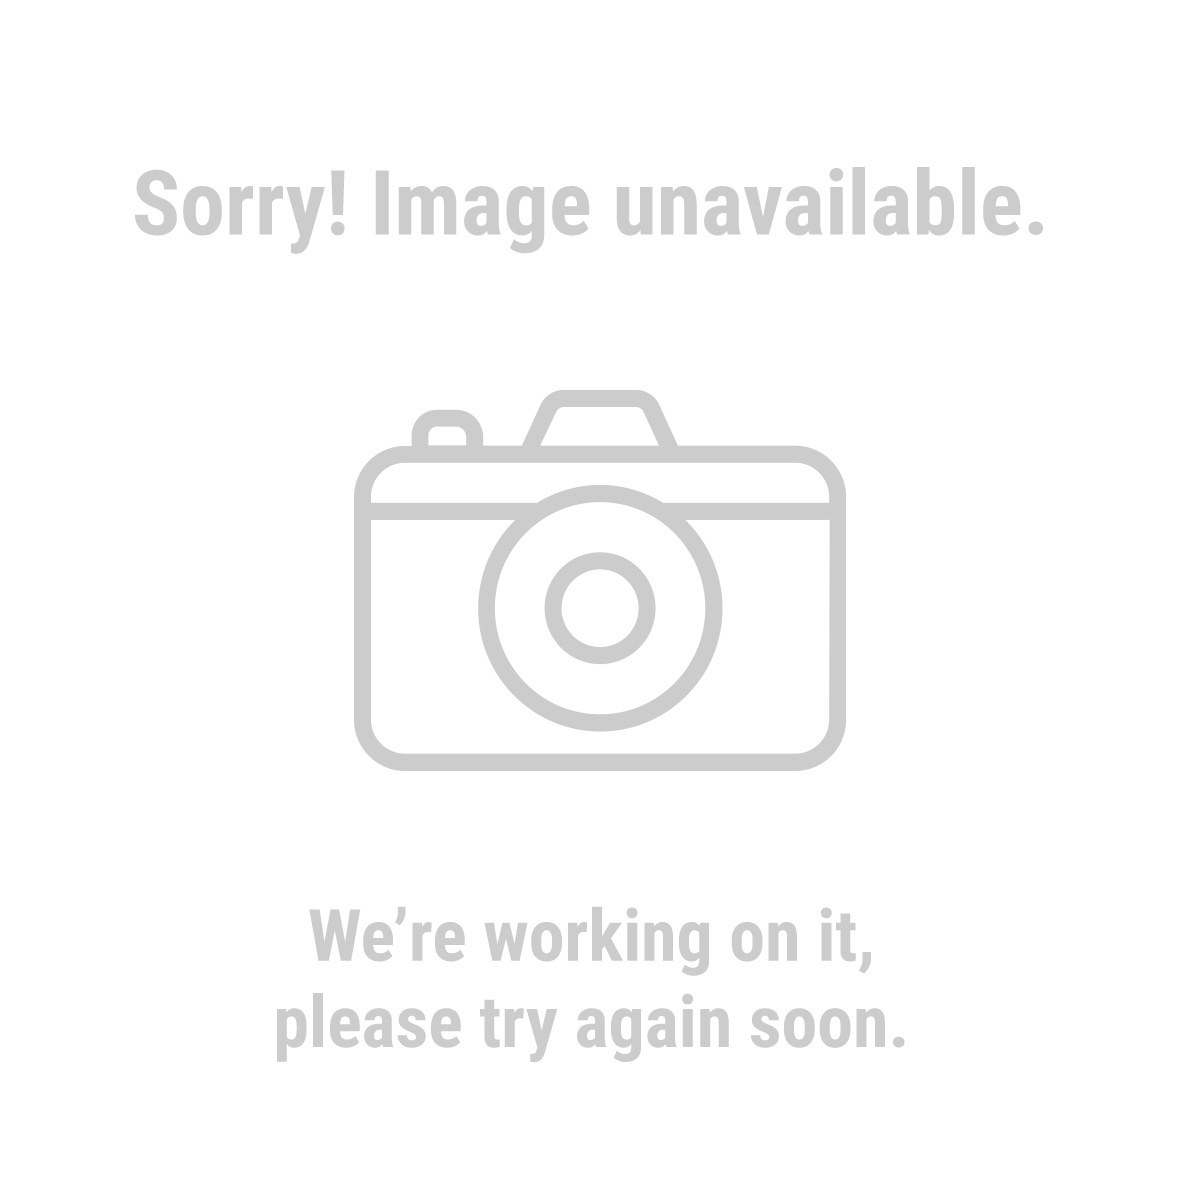 Central Machinery 96008 Stand for Shrinker and Stretcher Machines